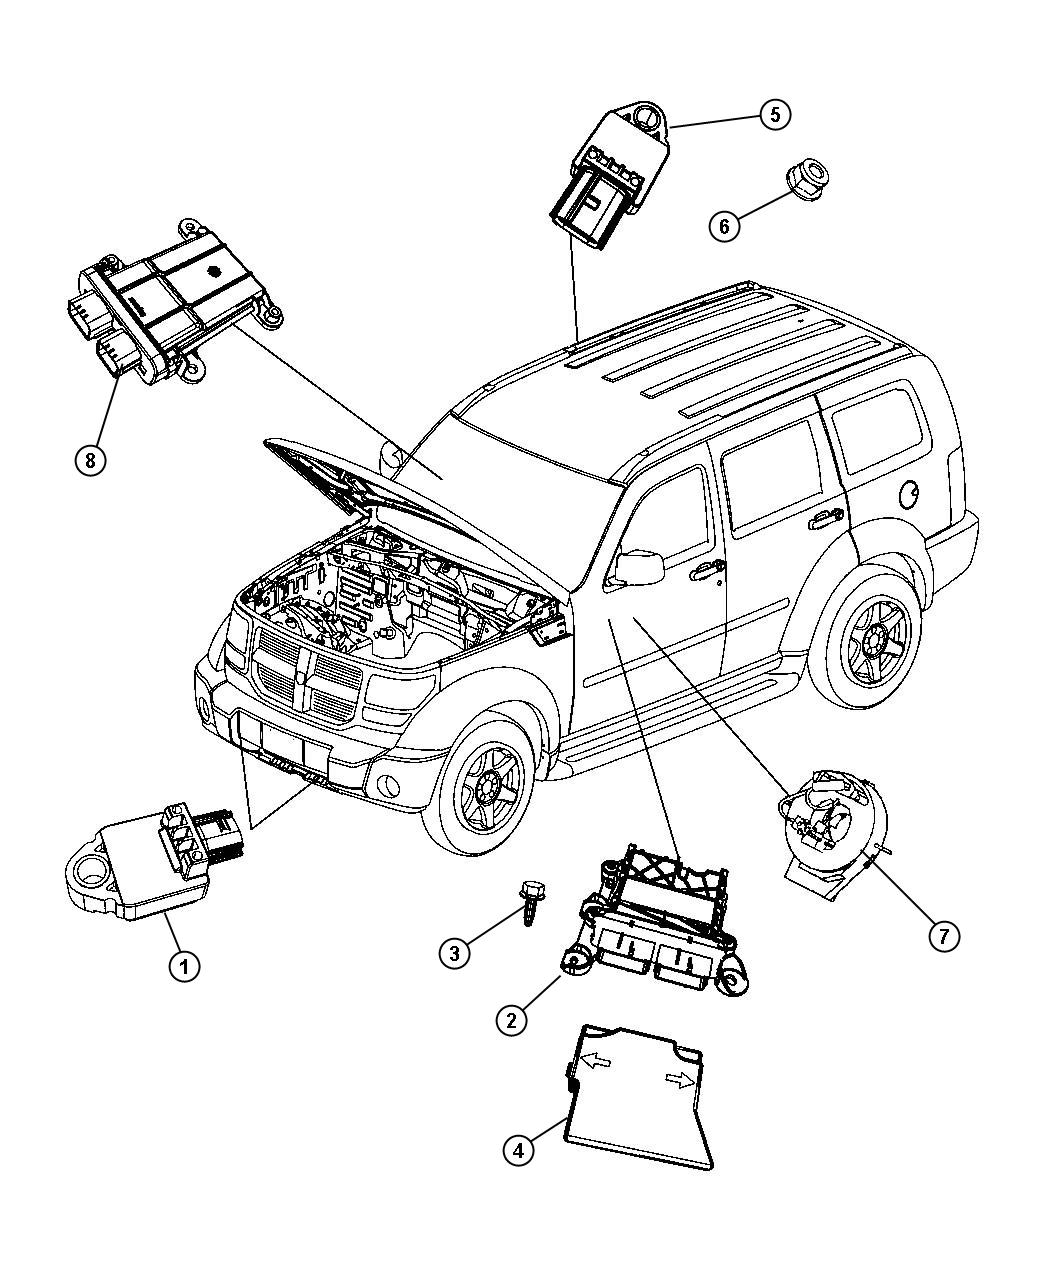 93 Dodge Dakota Serpentine Belt Diagram in addition Jeep Airbag Sensor Location moreover 98 Stratus Sensor Locations together with  on 1998 dodge grand caravan wiring diagram